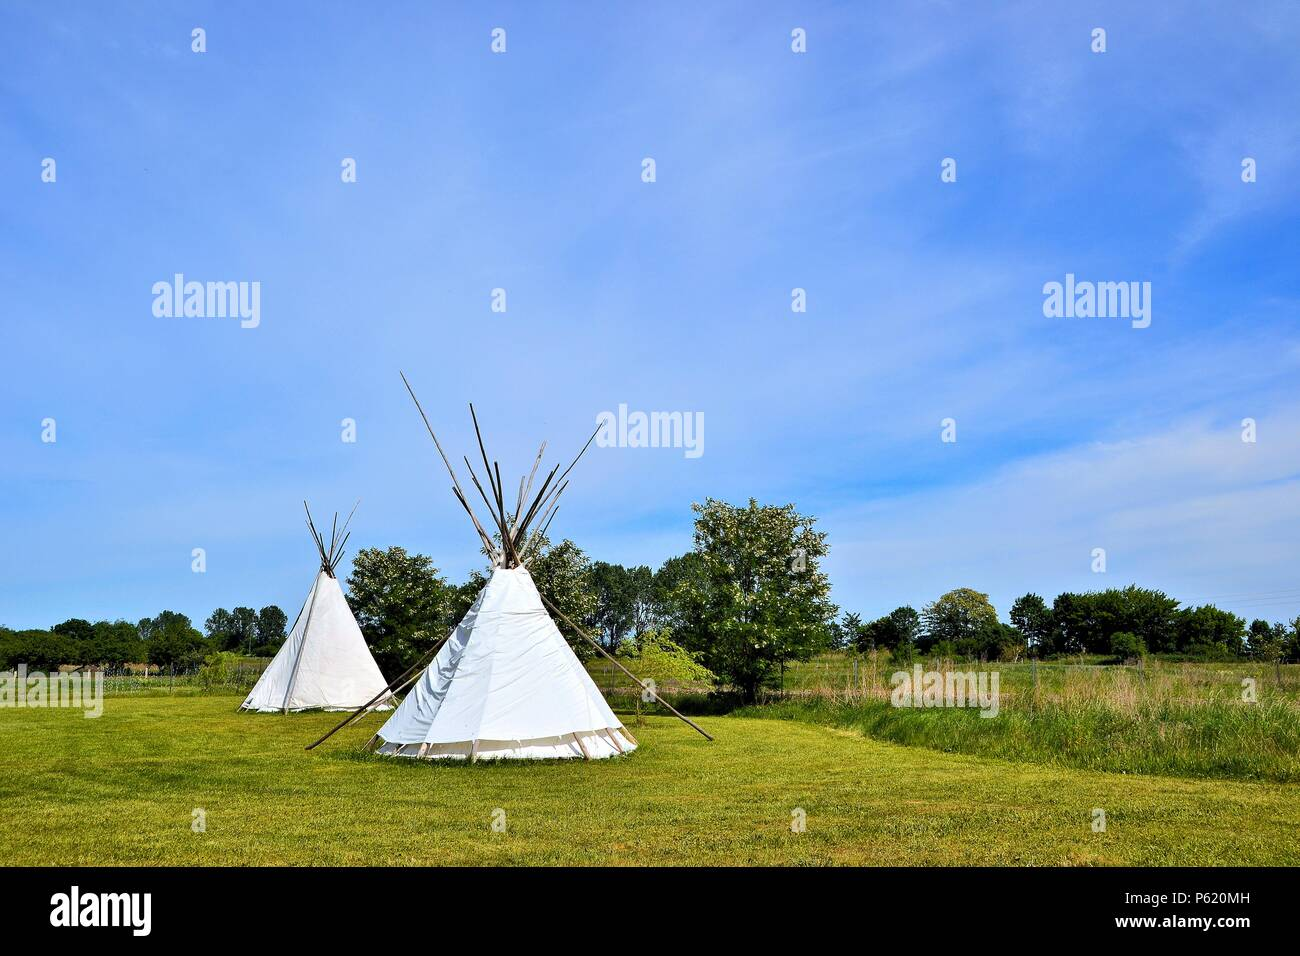 Indian tents on a meadow at a campsite in Bertingen in Germany - Stock Image